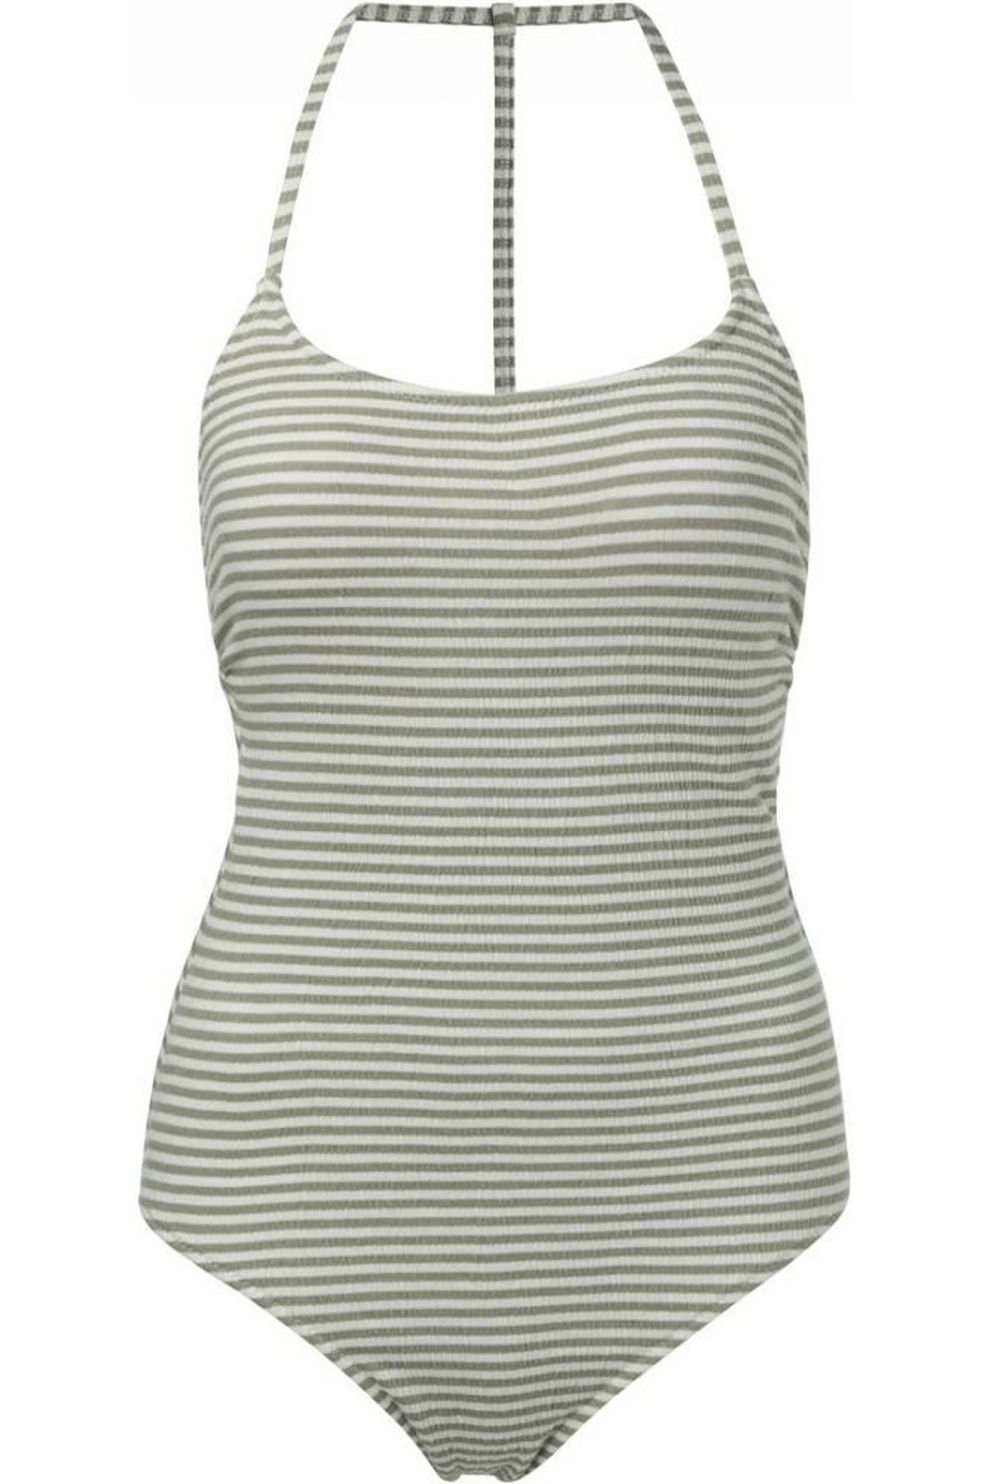 YAYA Badpak Stripes One-Piece With Thin Straps And Racer Back voor dames - Wit/MiddenGroen - Maten: